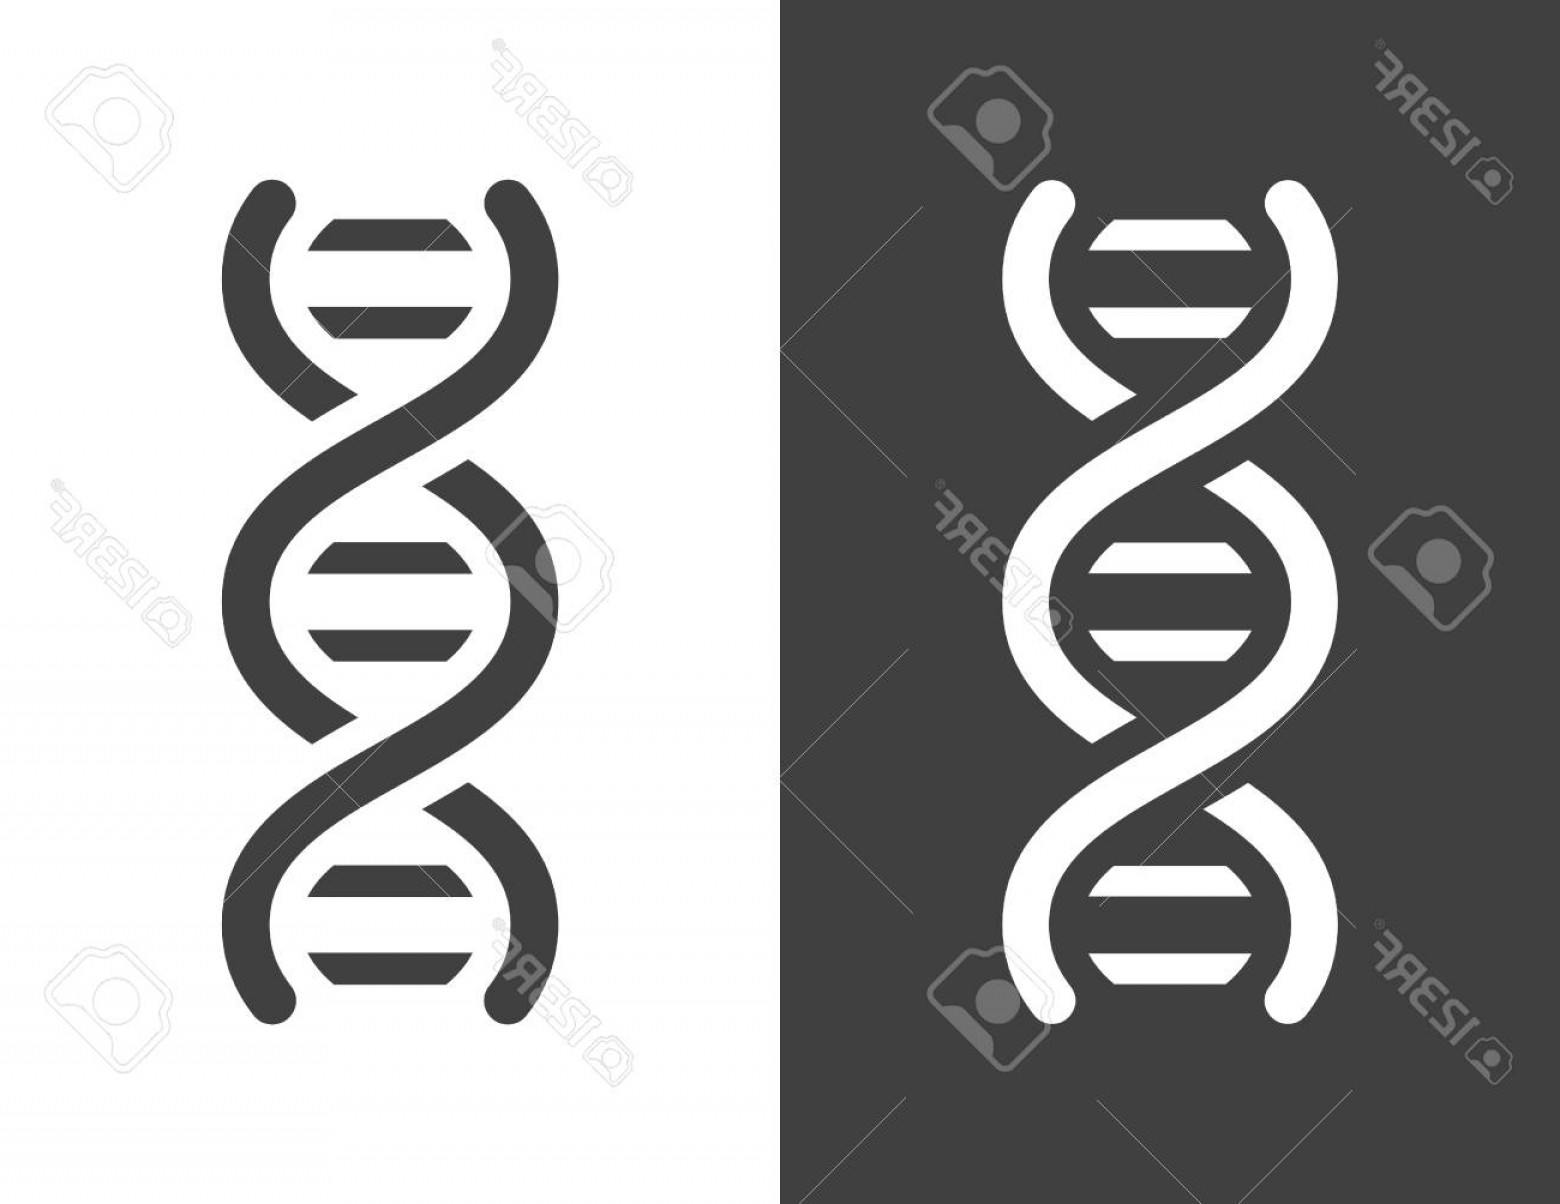 DNA Helix Vector: Photostock Vector Vector Dark Grey Dna Helix Icon With A Simple Modern Look